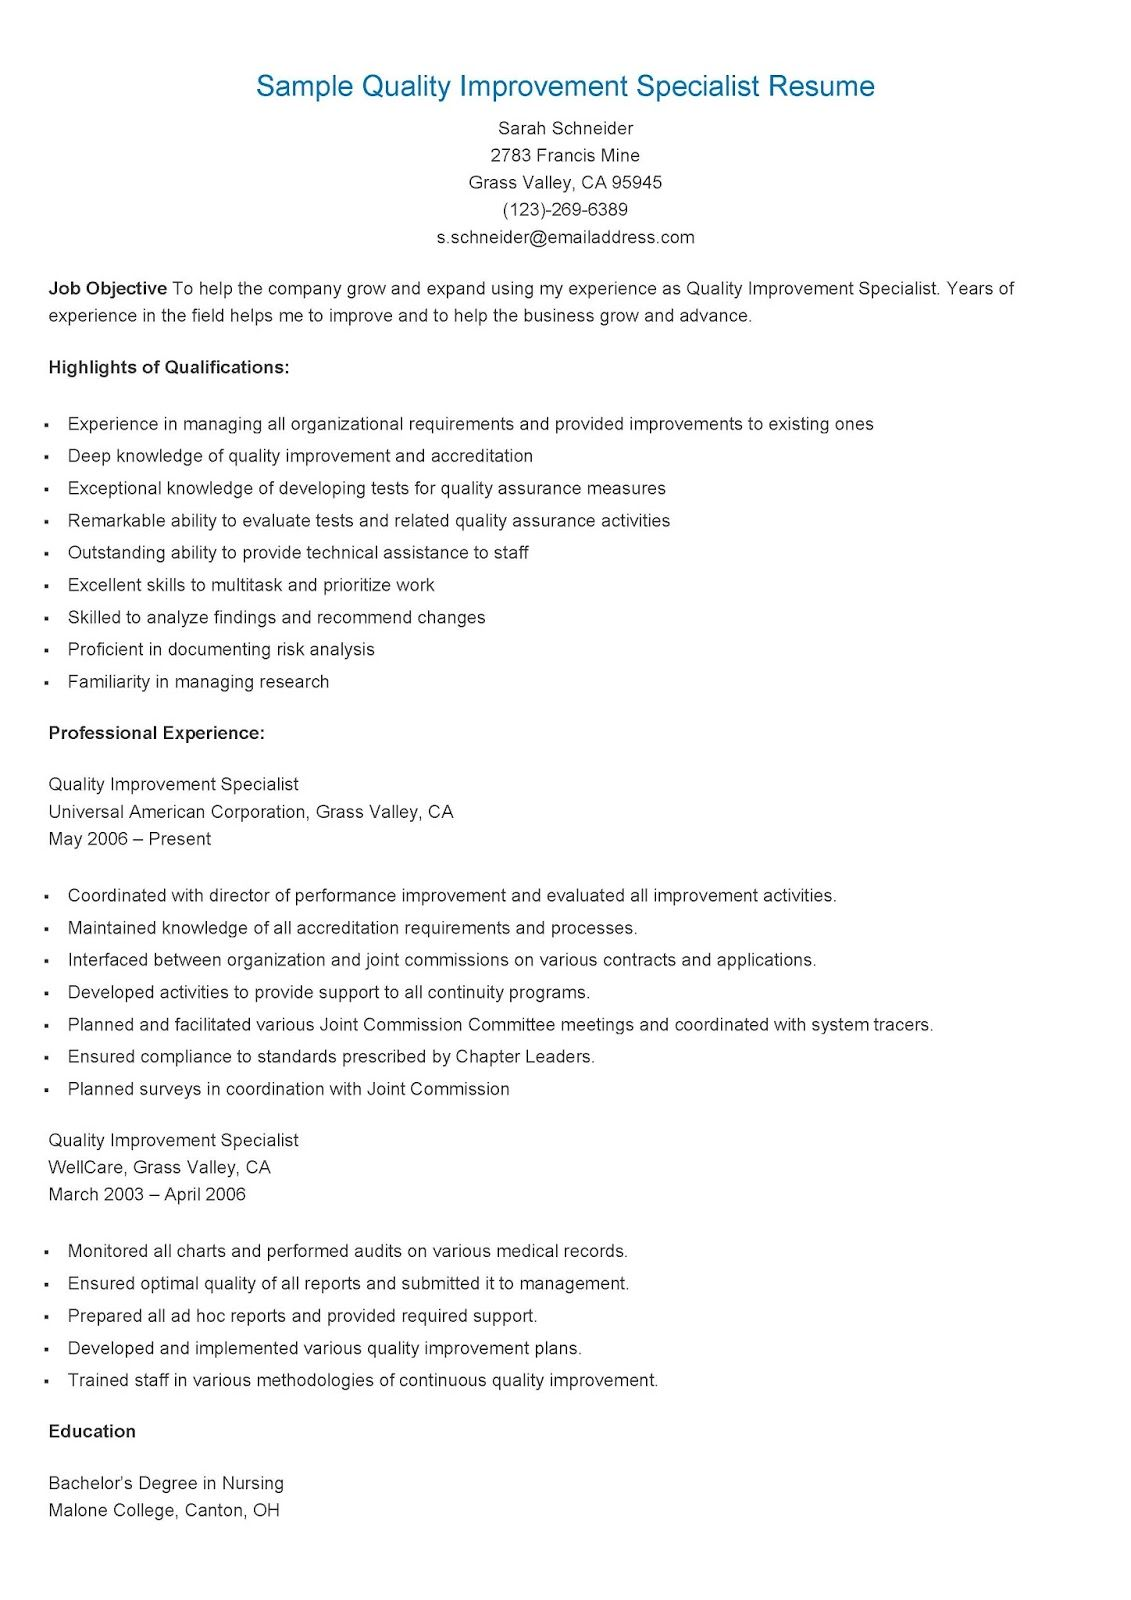 Sample Quality Improvement Specialist Resume  Resame